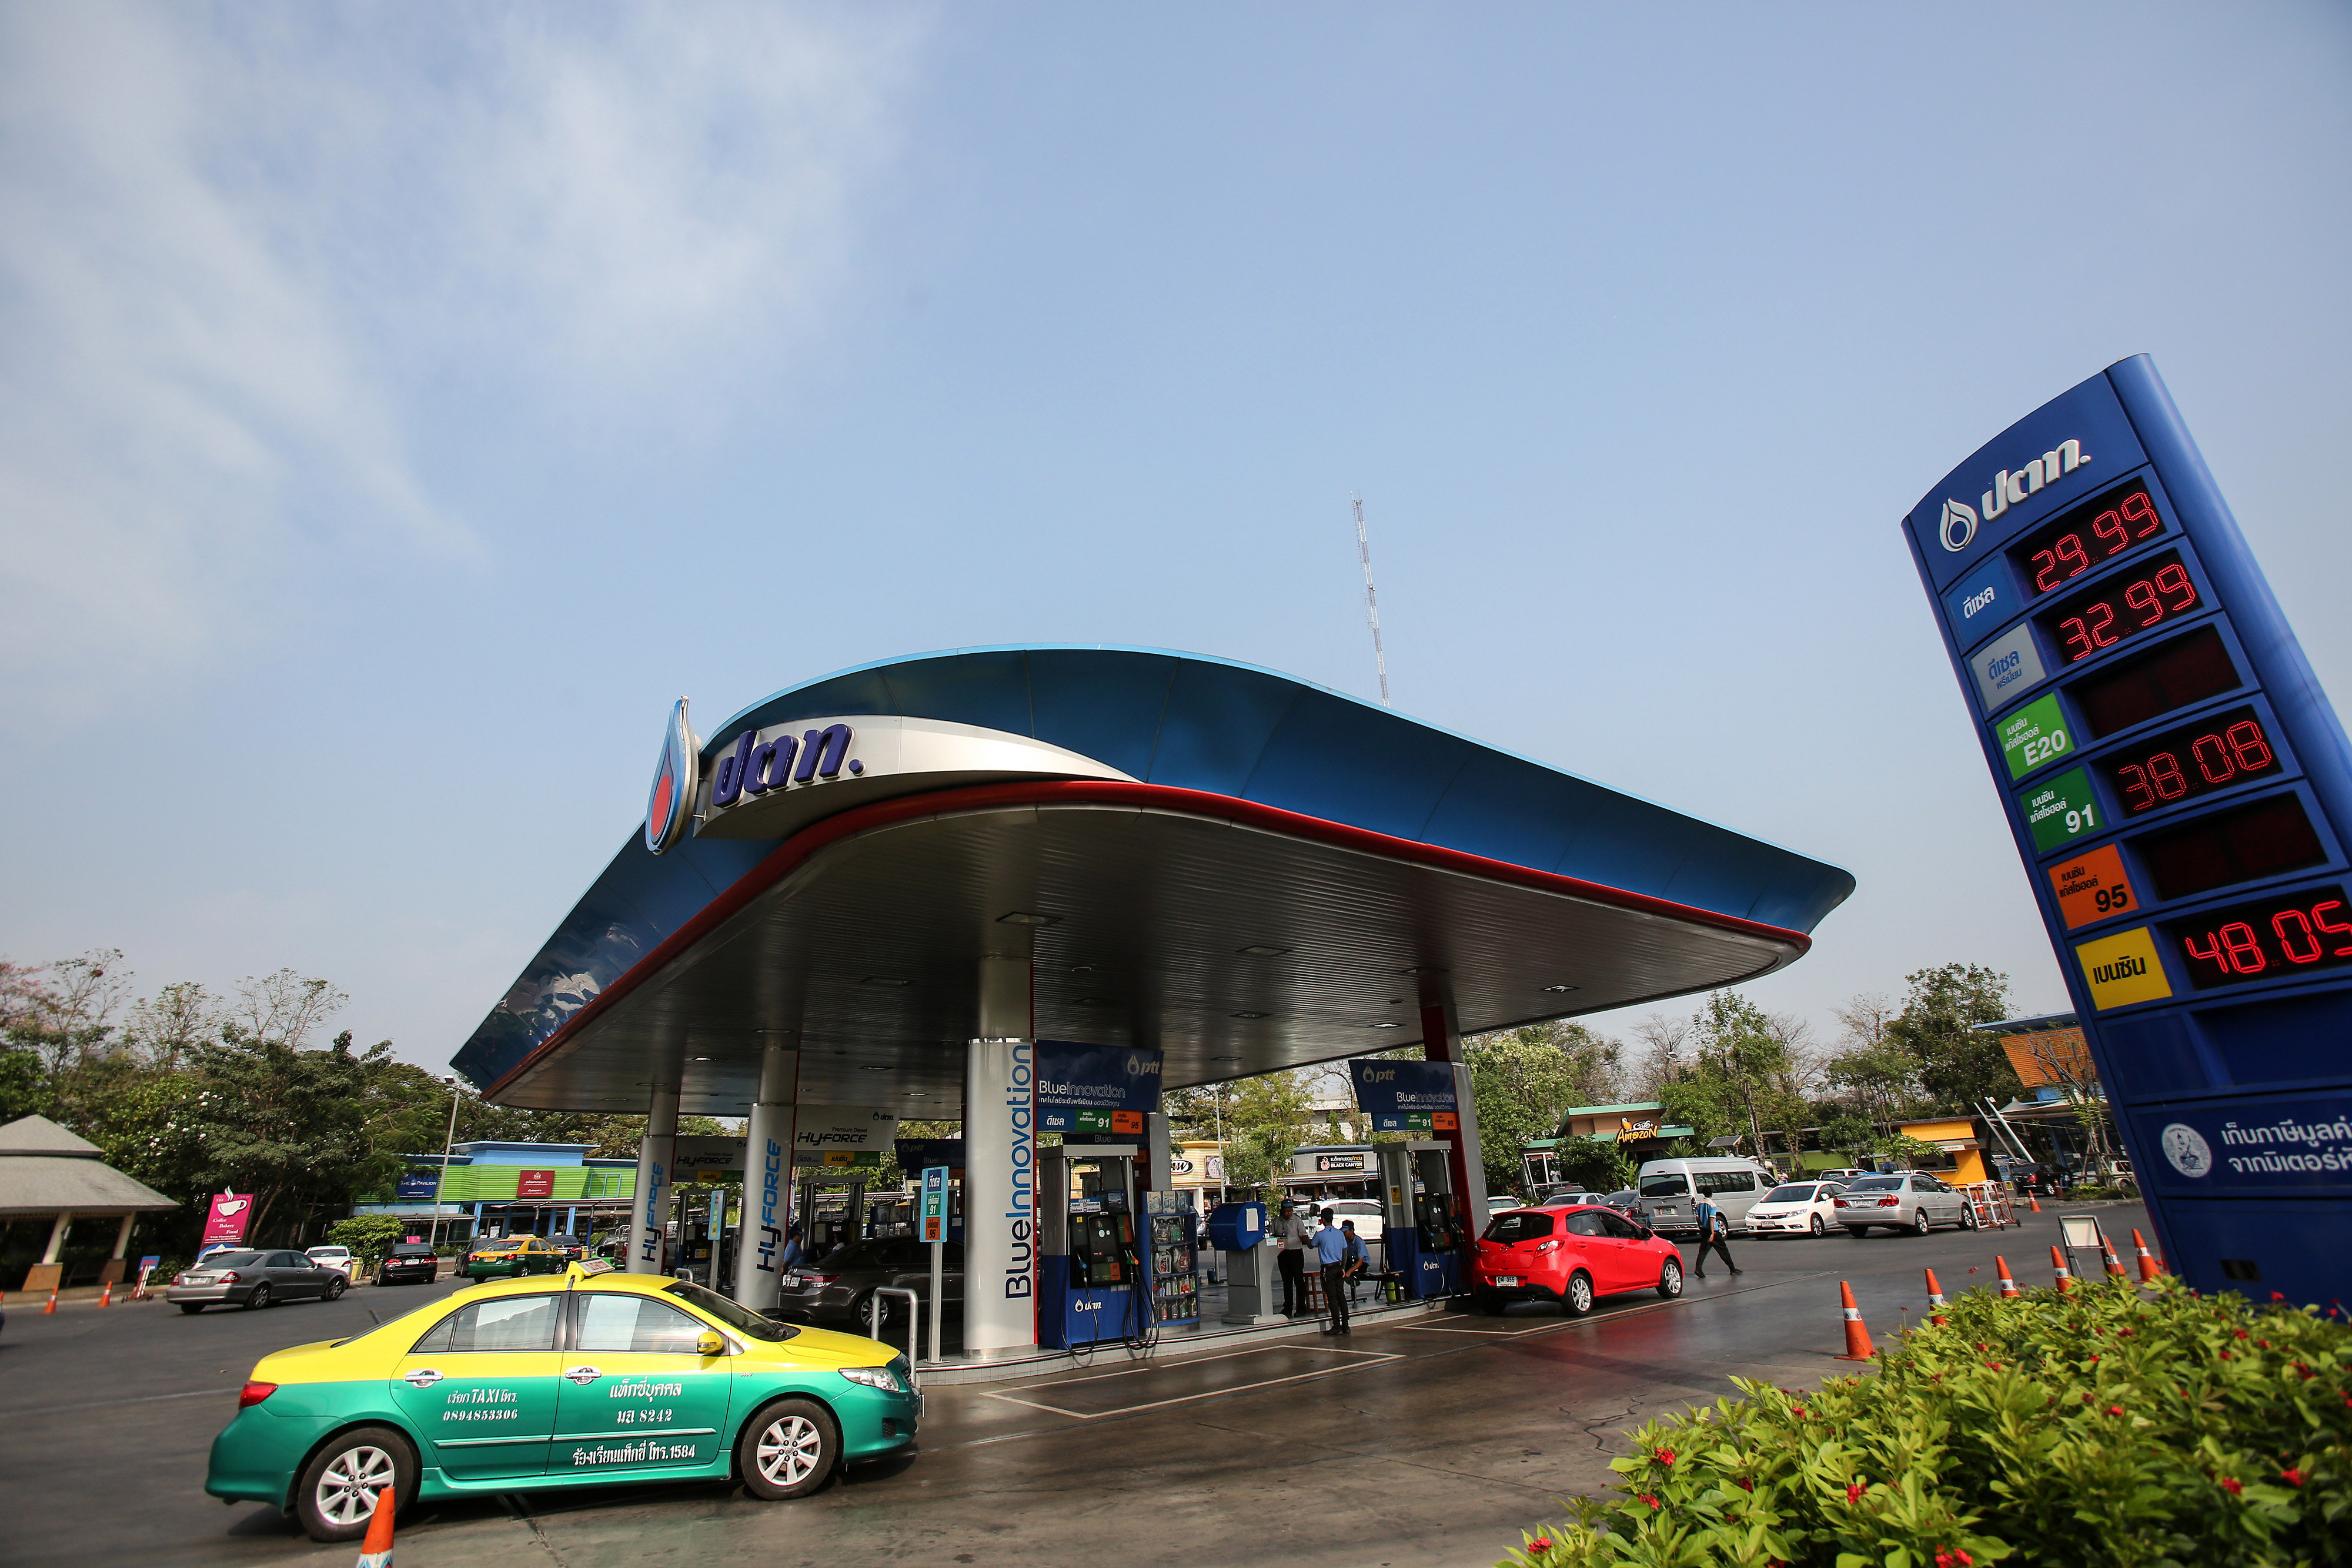 PTT Pcl Gas Stations Ahead Of Full-Year Earnings